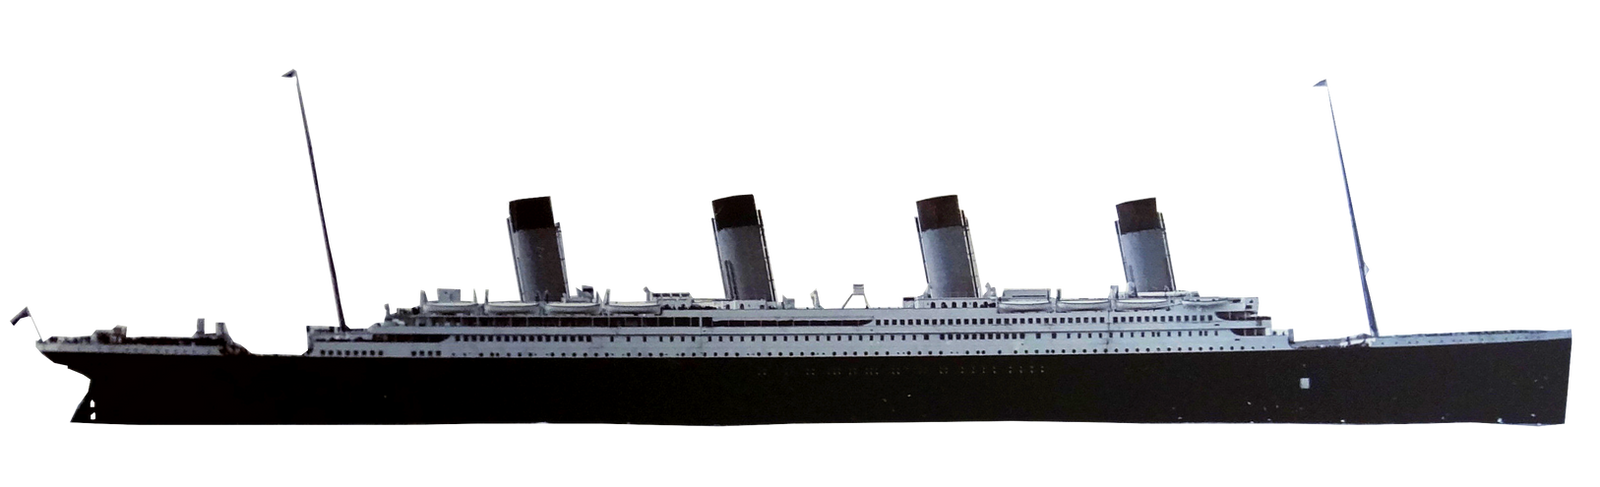 Rms Titanic Png By Rms Olympic On Deviantart